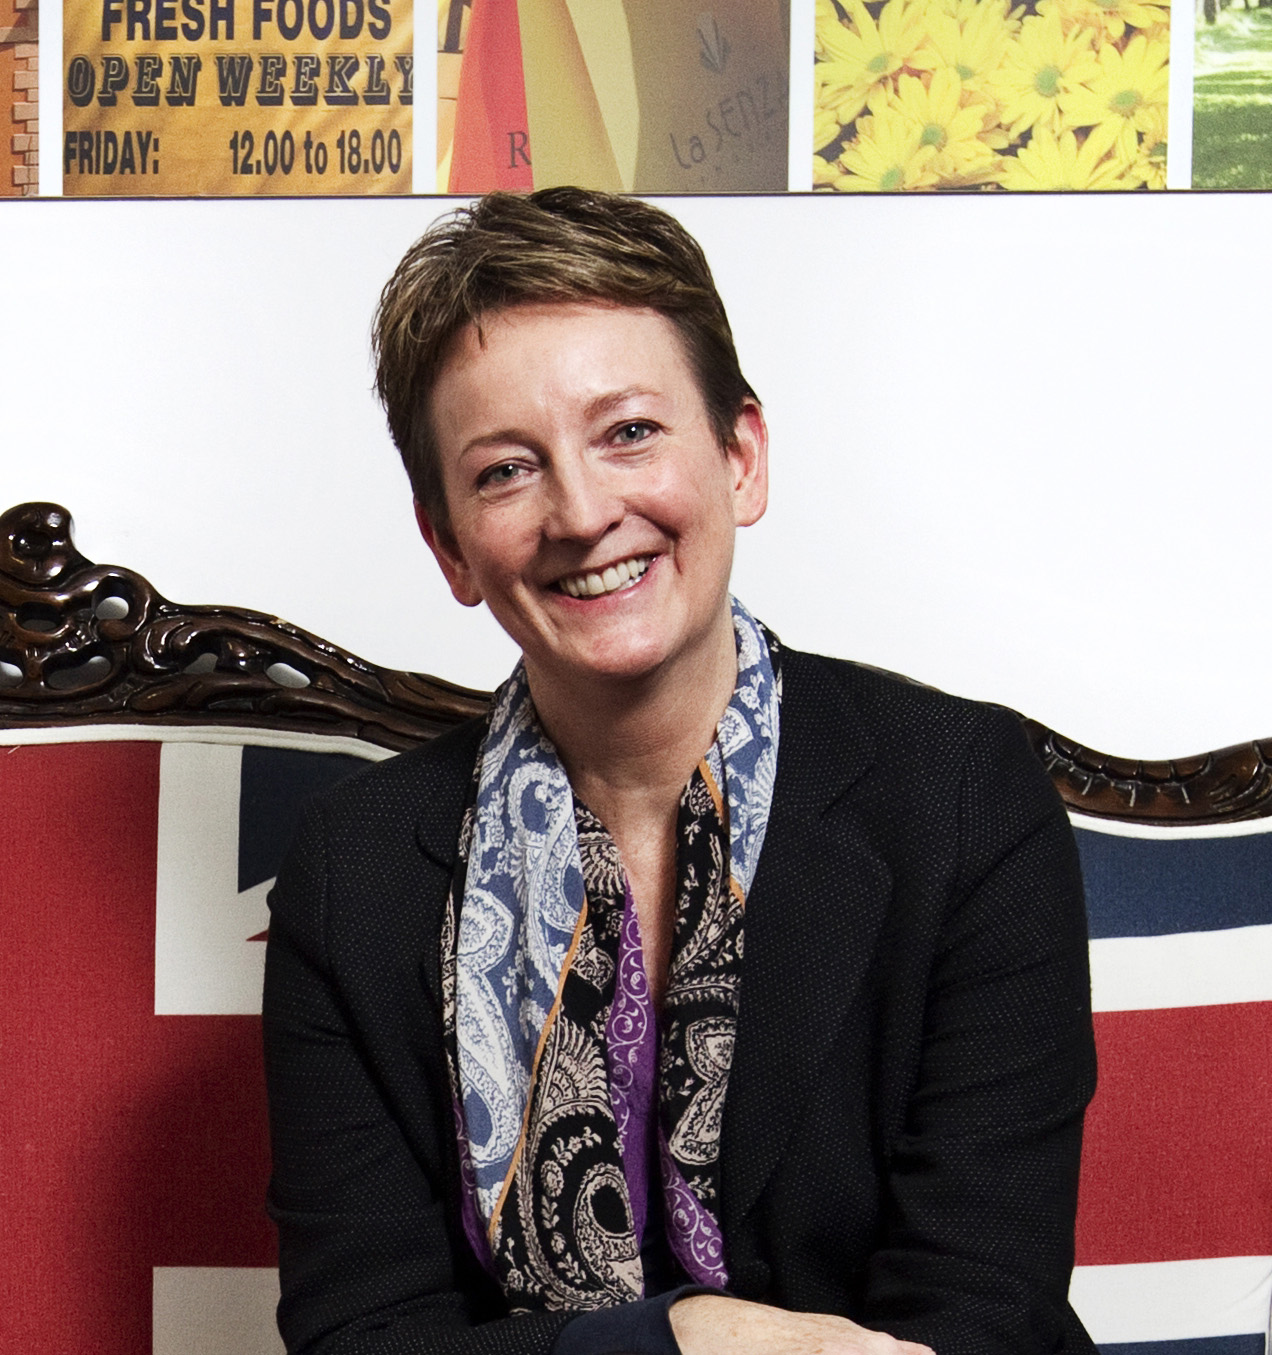 Sandie Dawe, chief executive, VisitBritain